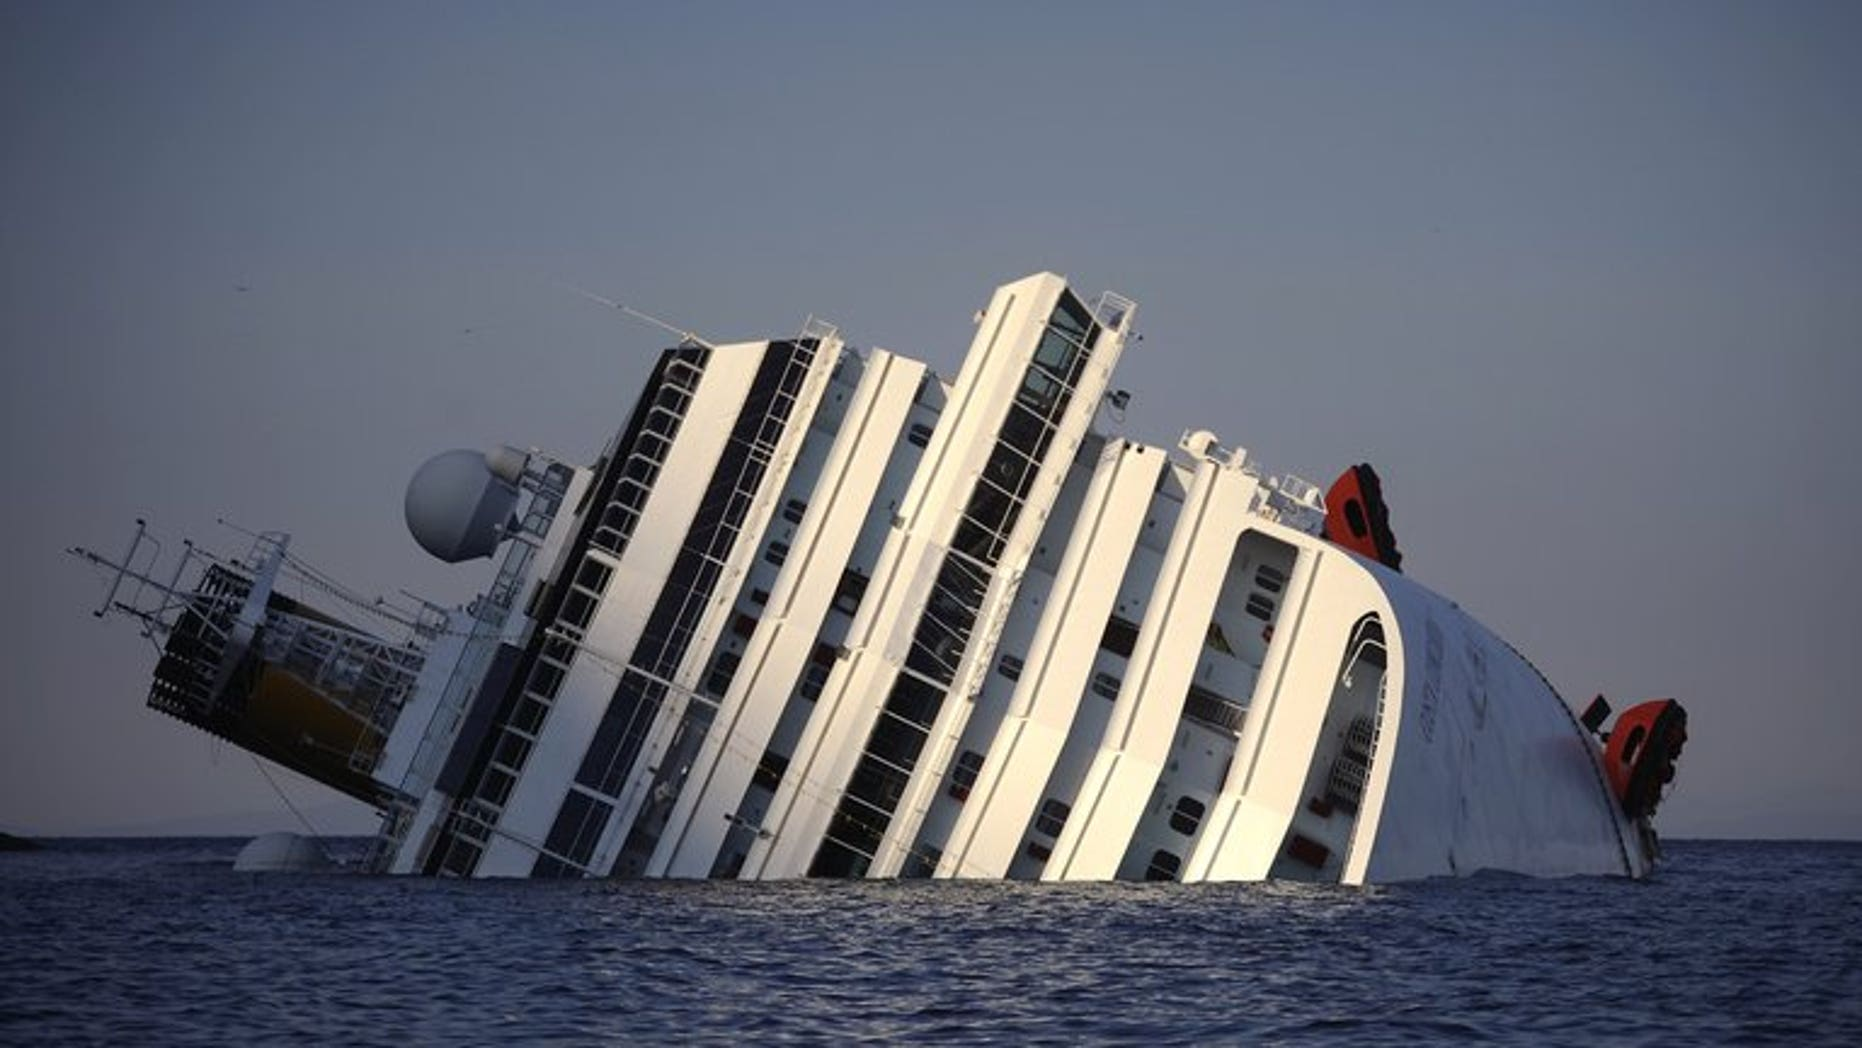 View of the Costa Concordia taken on January 14, 2012, after the cruise ship ran aground off Giglio island